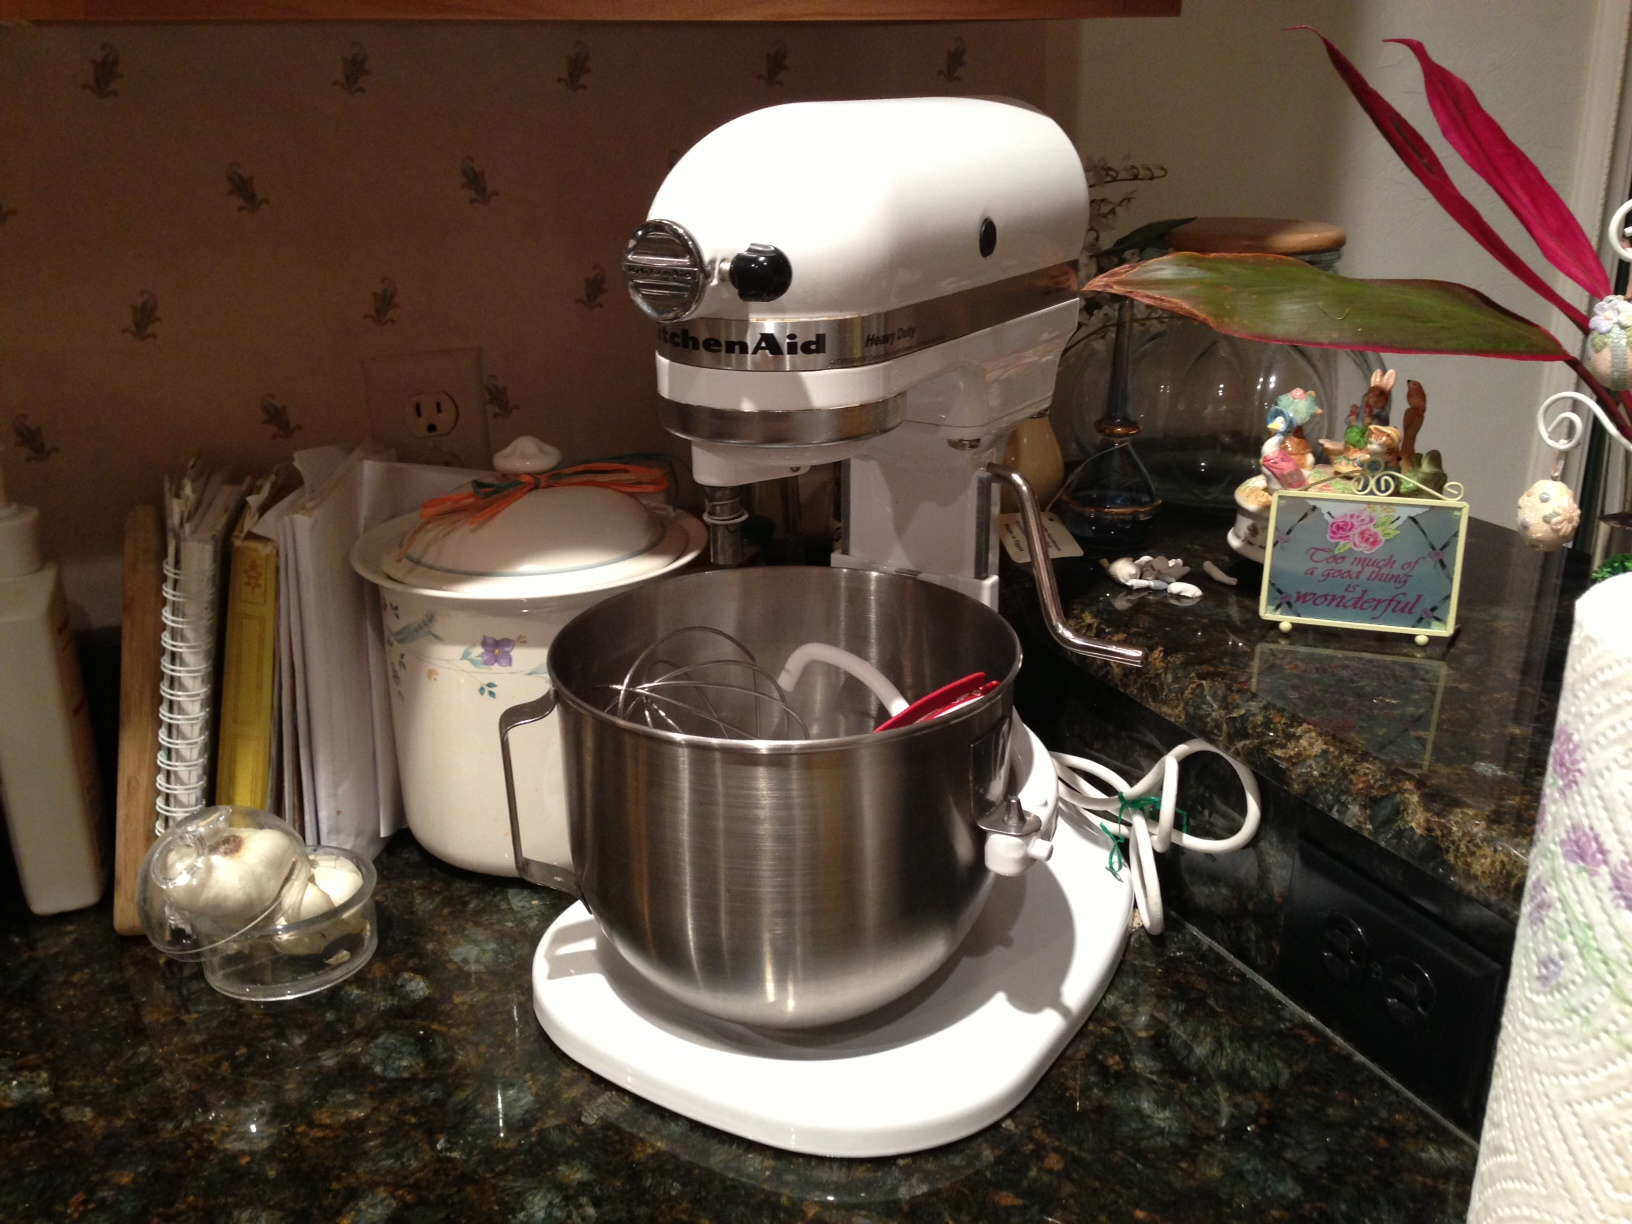 This is auntie's original stand mixer—still looks like new!